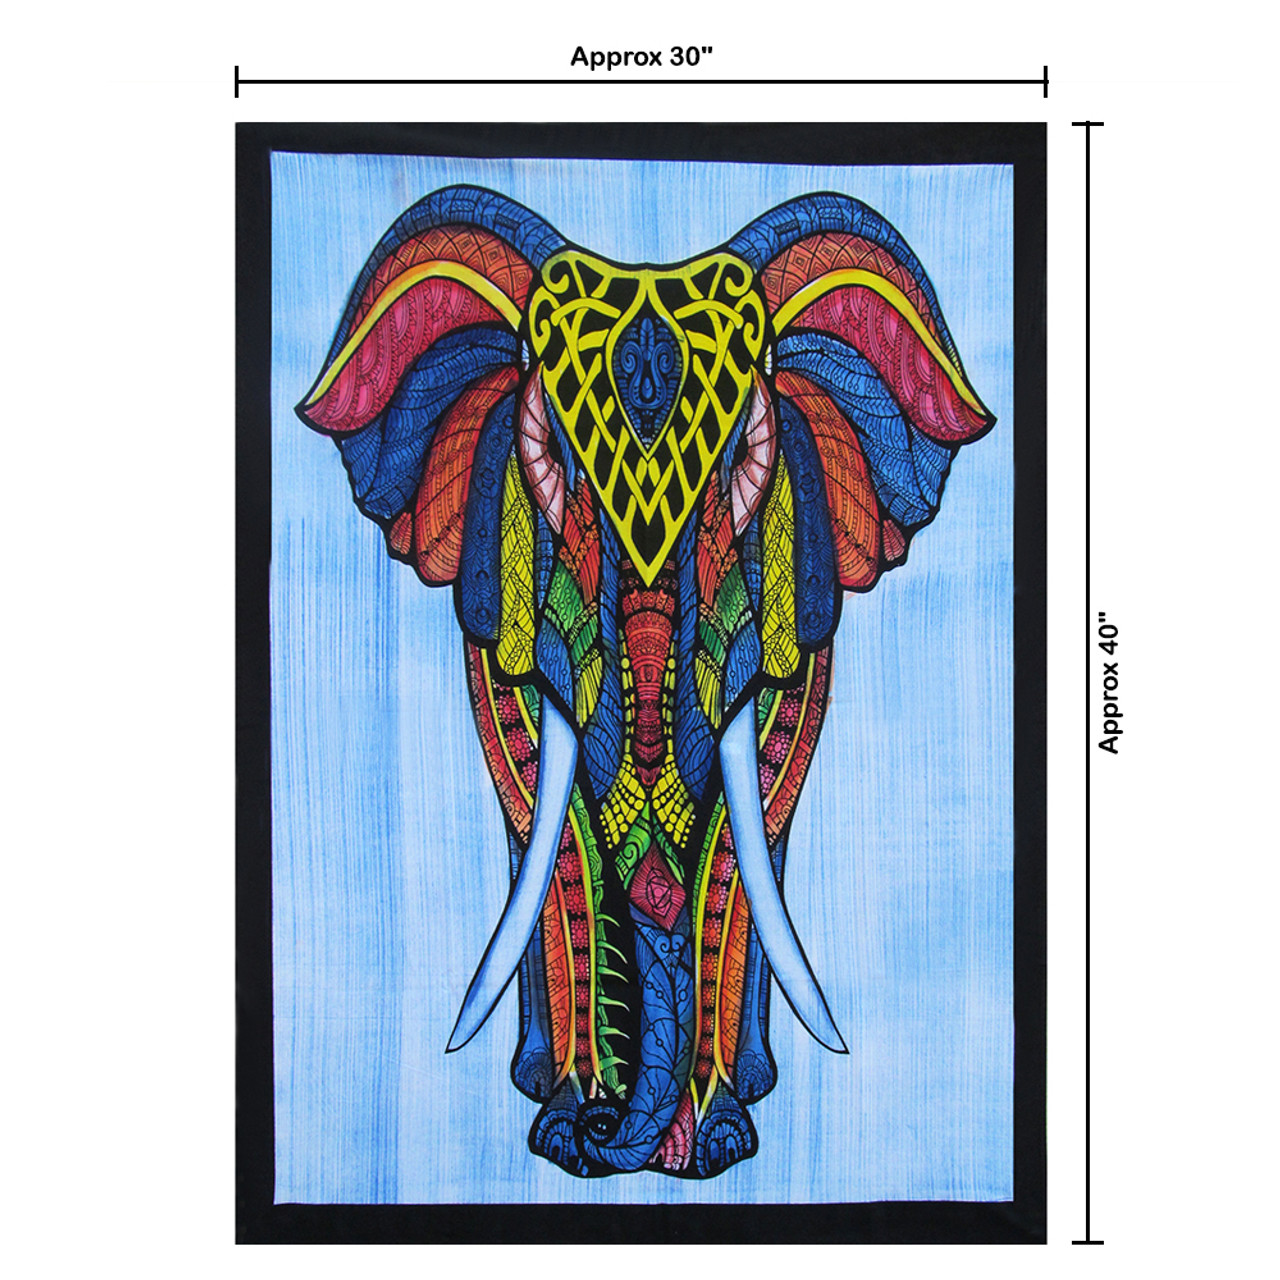 Elephant Mandala Cotton Table Cover Poster Size Ethnic Indian Wall Hanging Decor